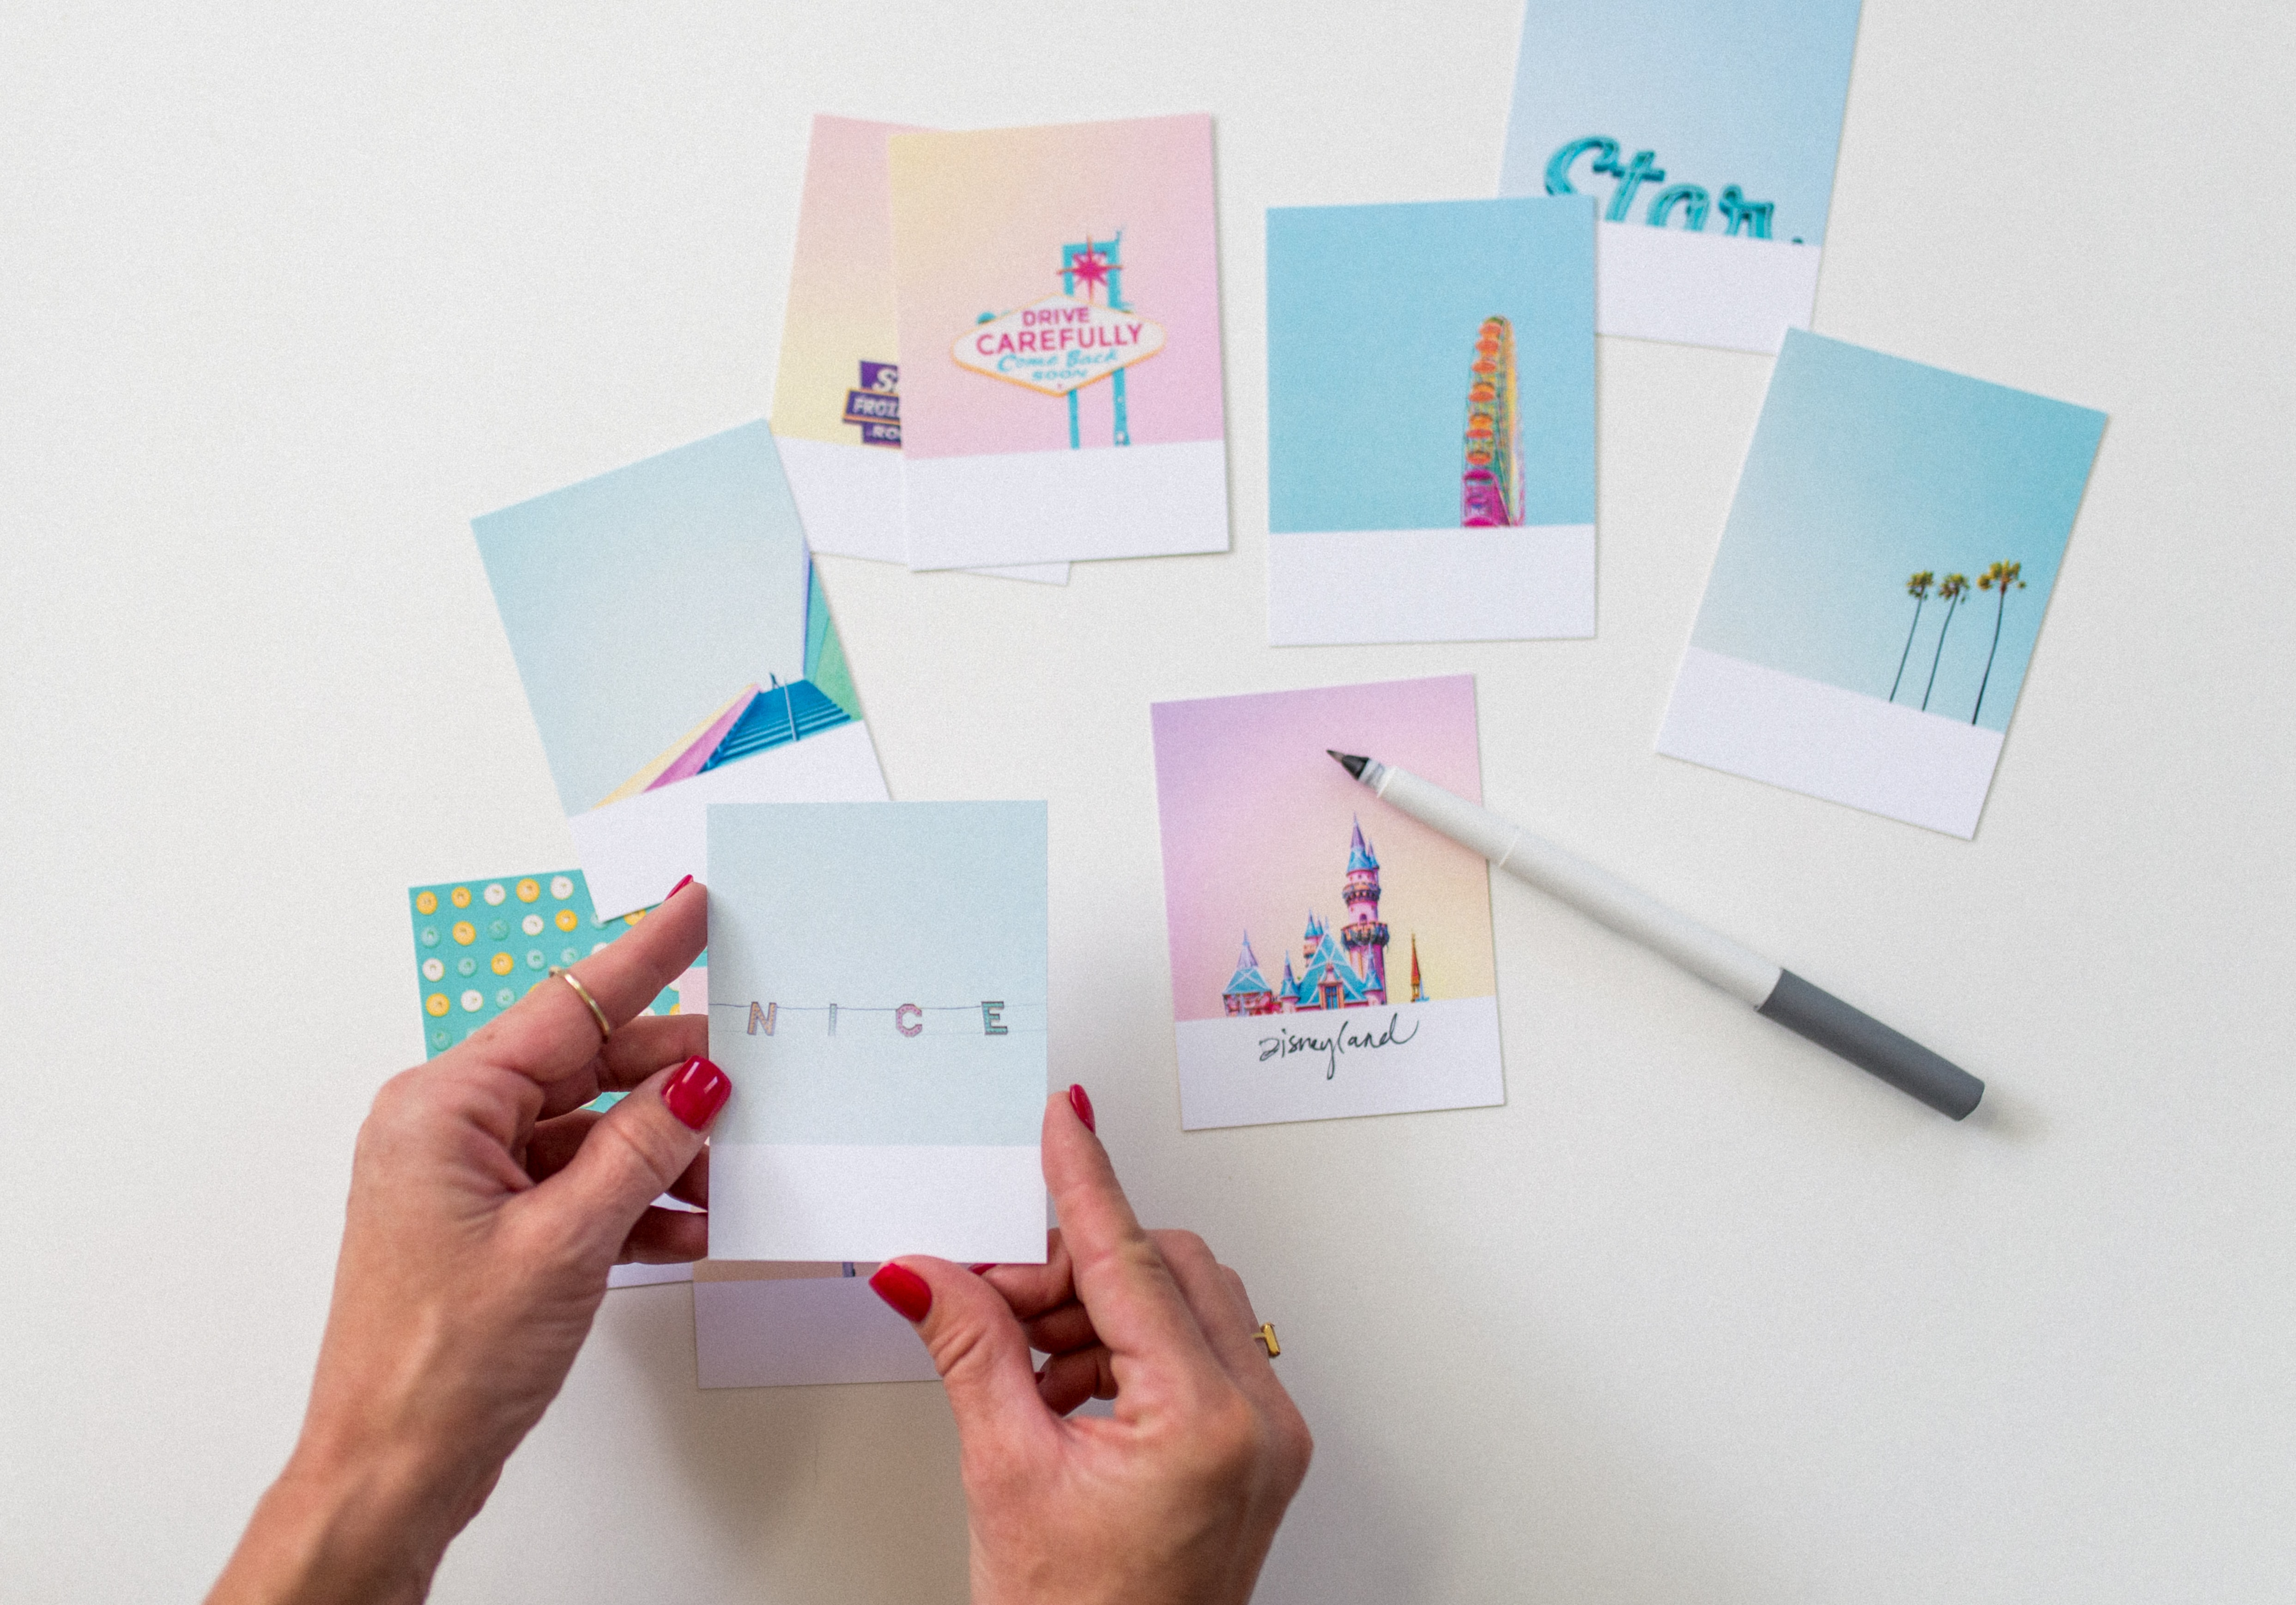 flat lay photography of person holding nice text photo paper